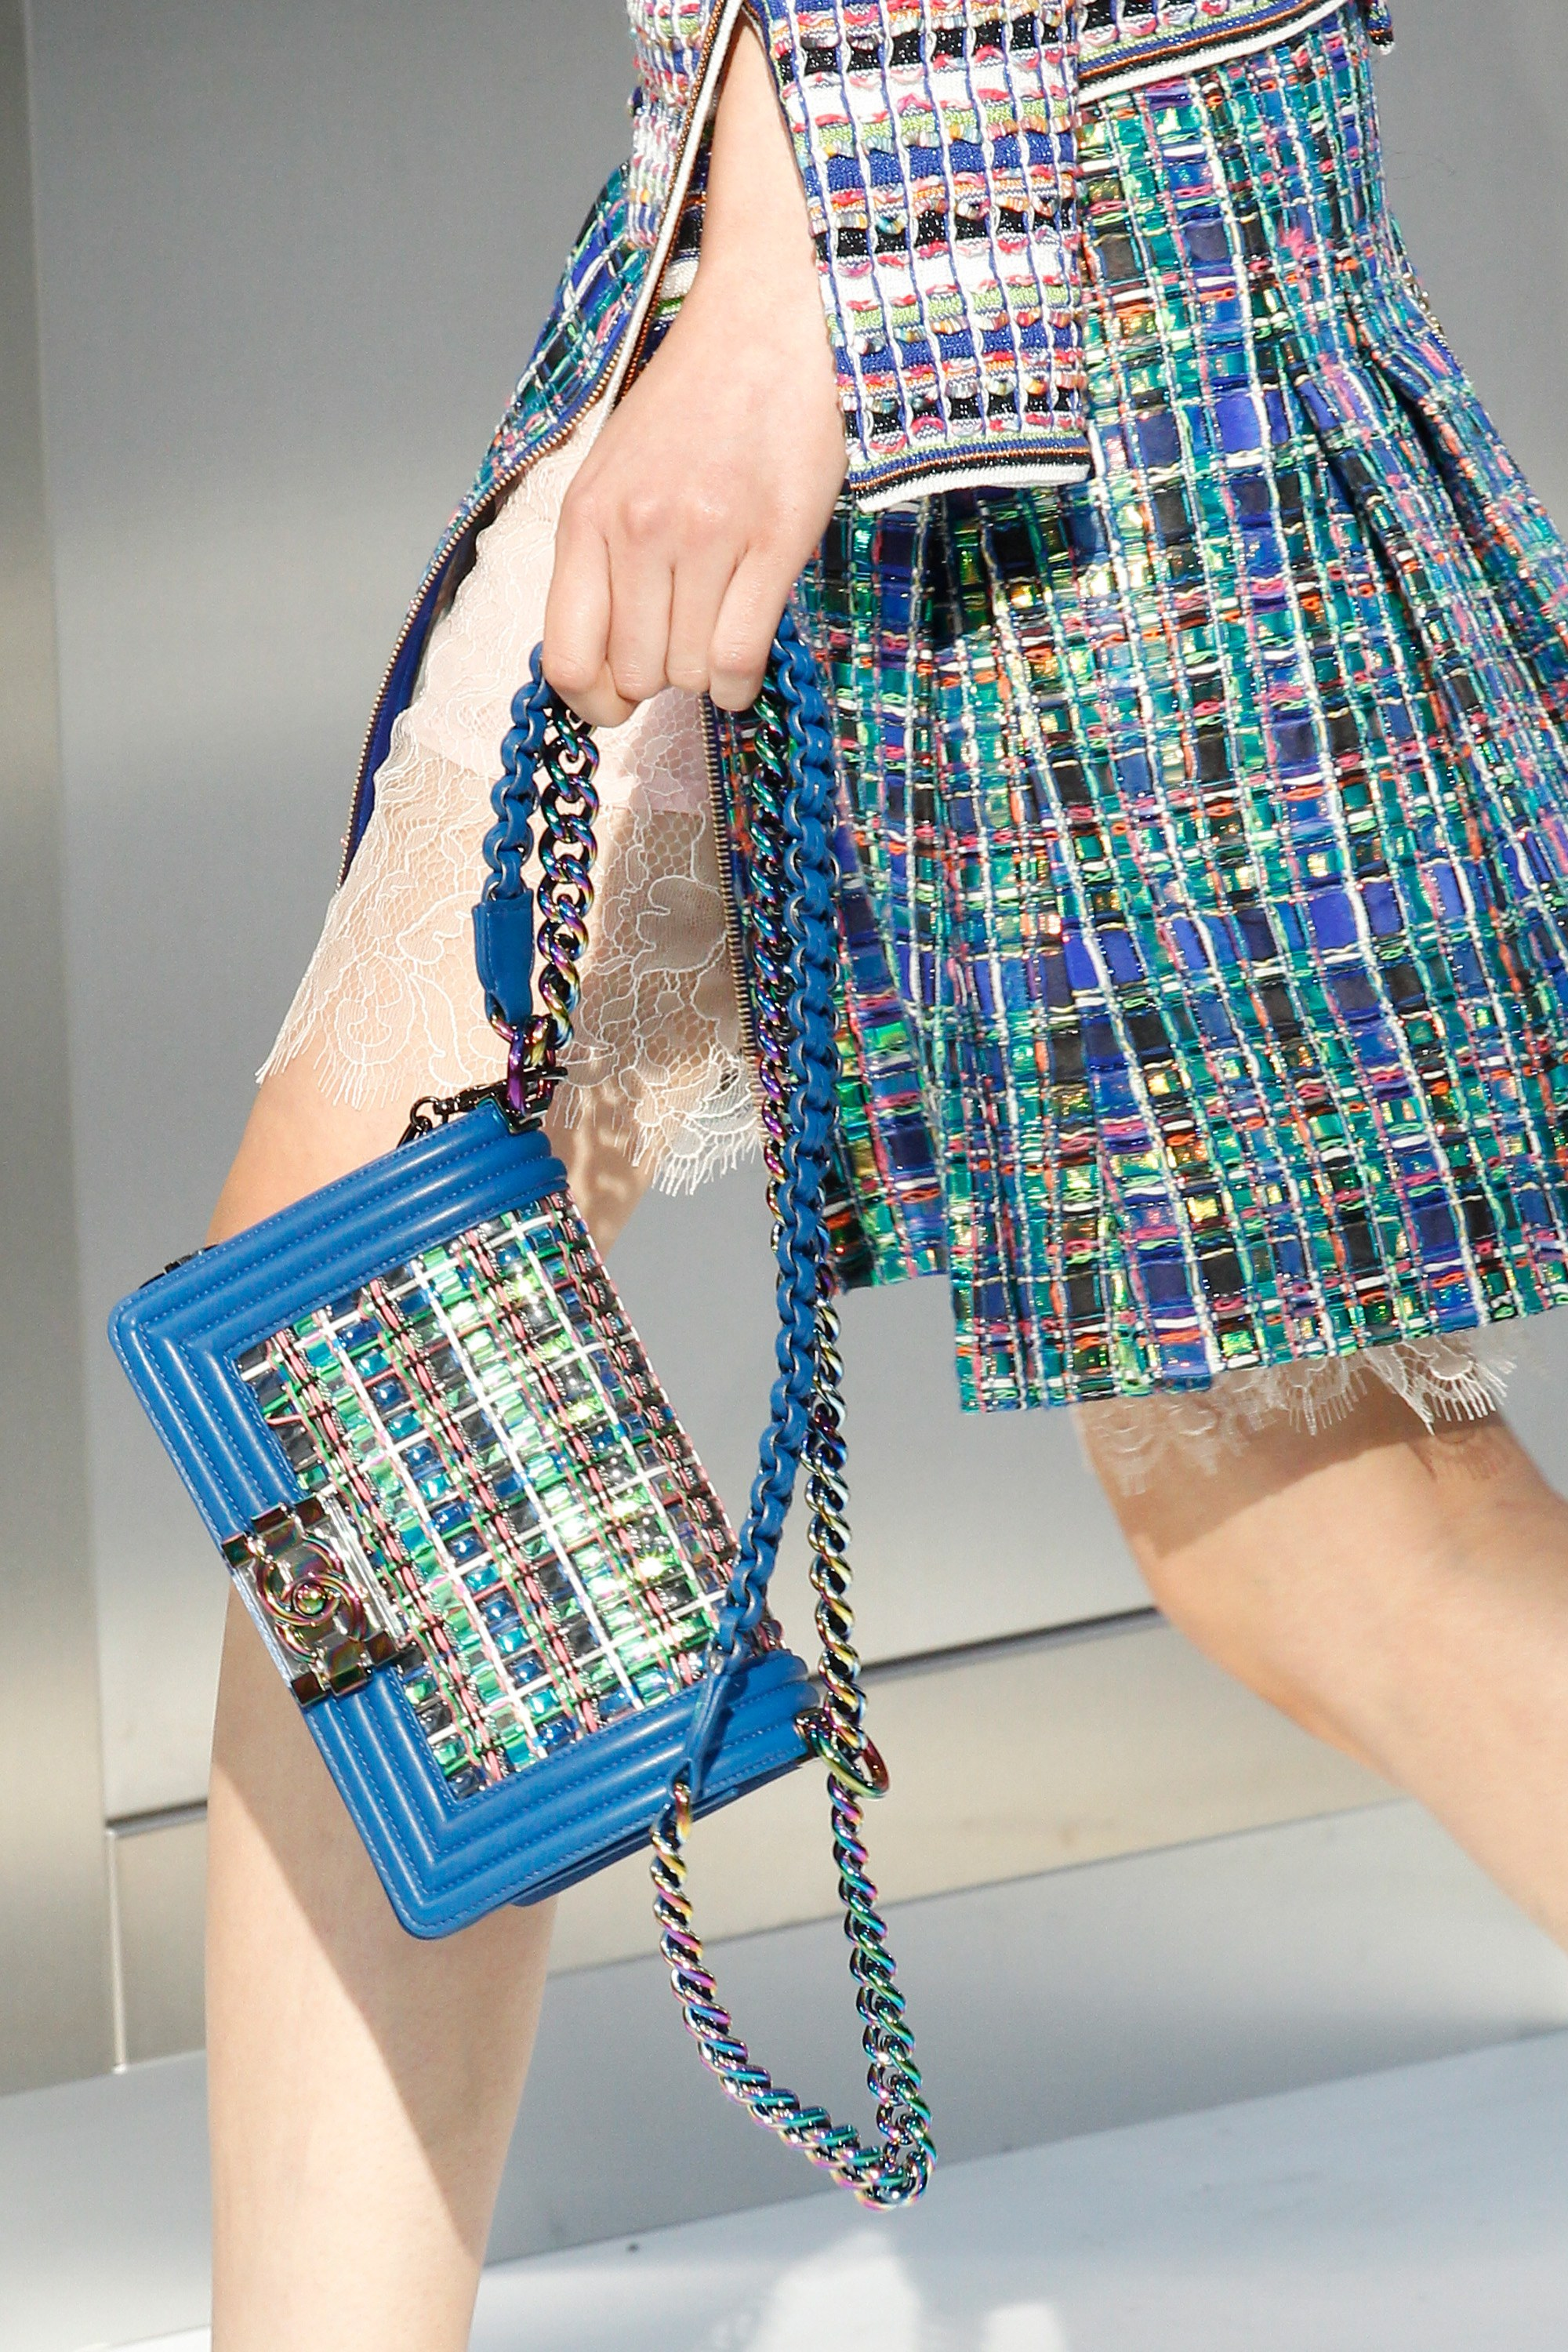 625f524fea3f Chanel Spring Summer 2017 Runway Bag Collection